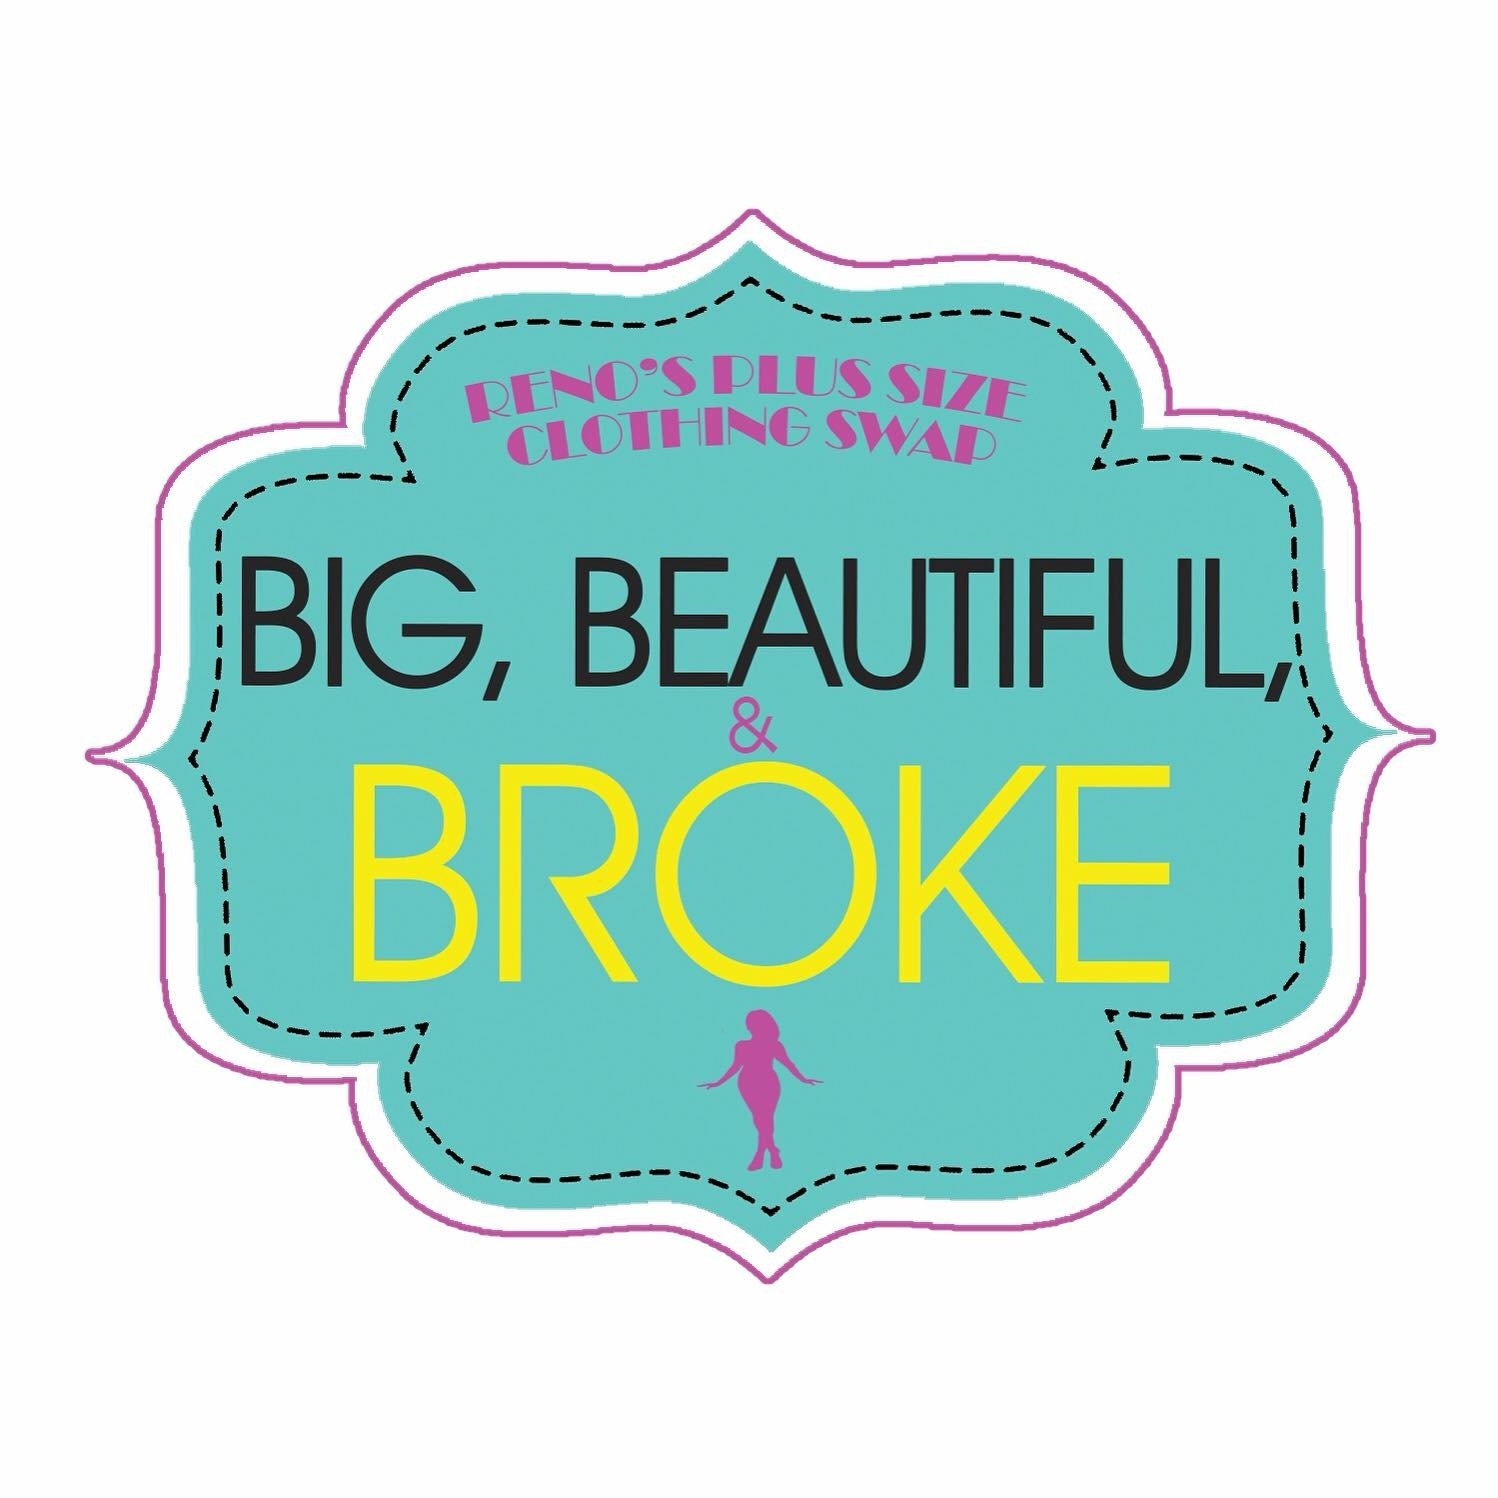 Big, Beautiful and Broke